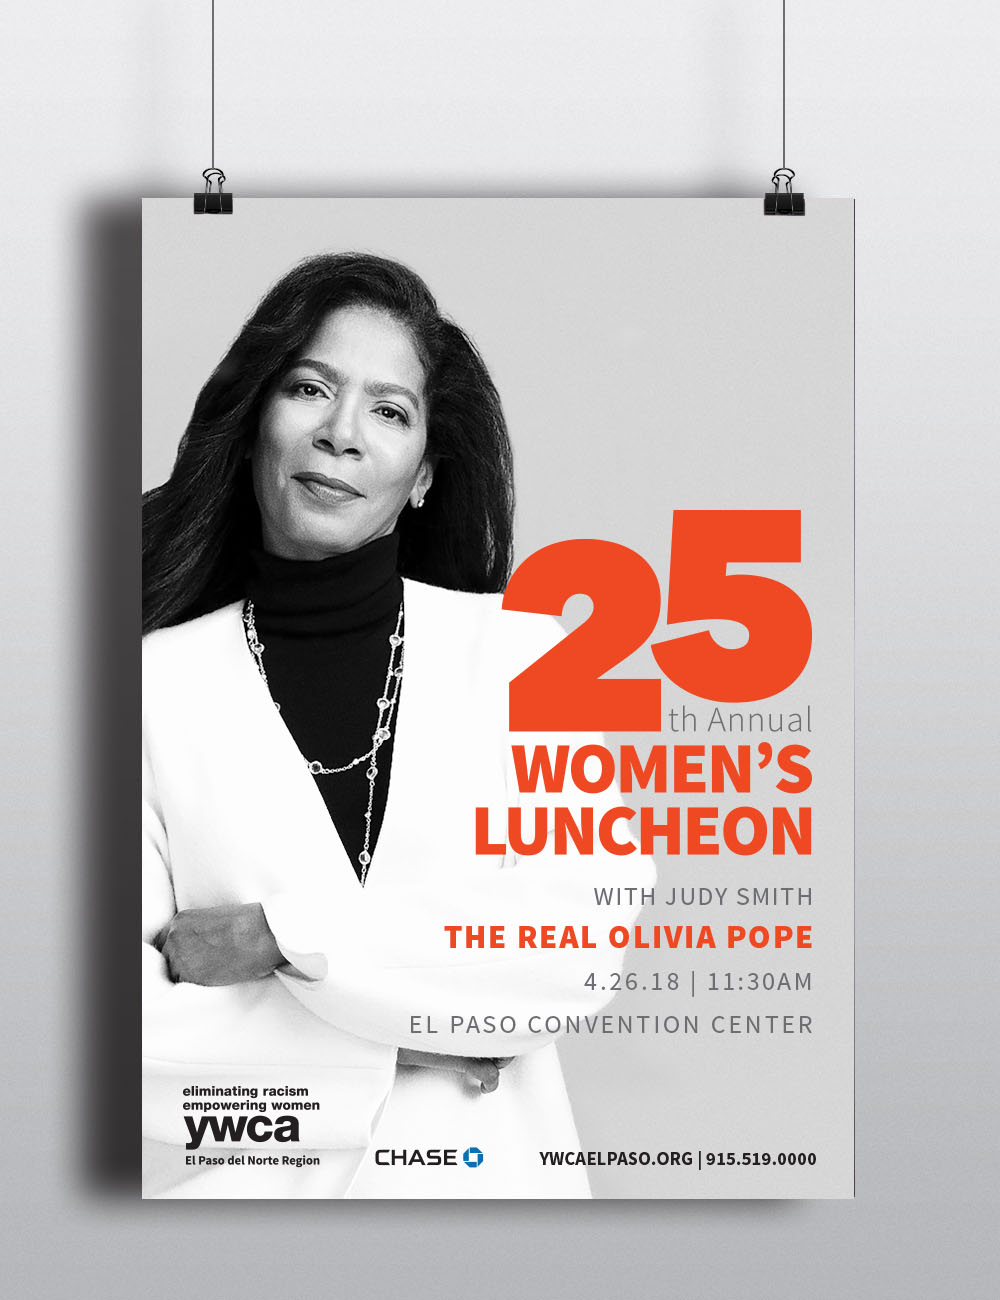 YWCA's Women's Luncheon poster